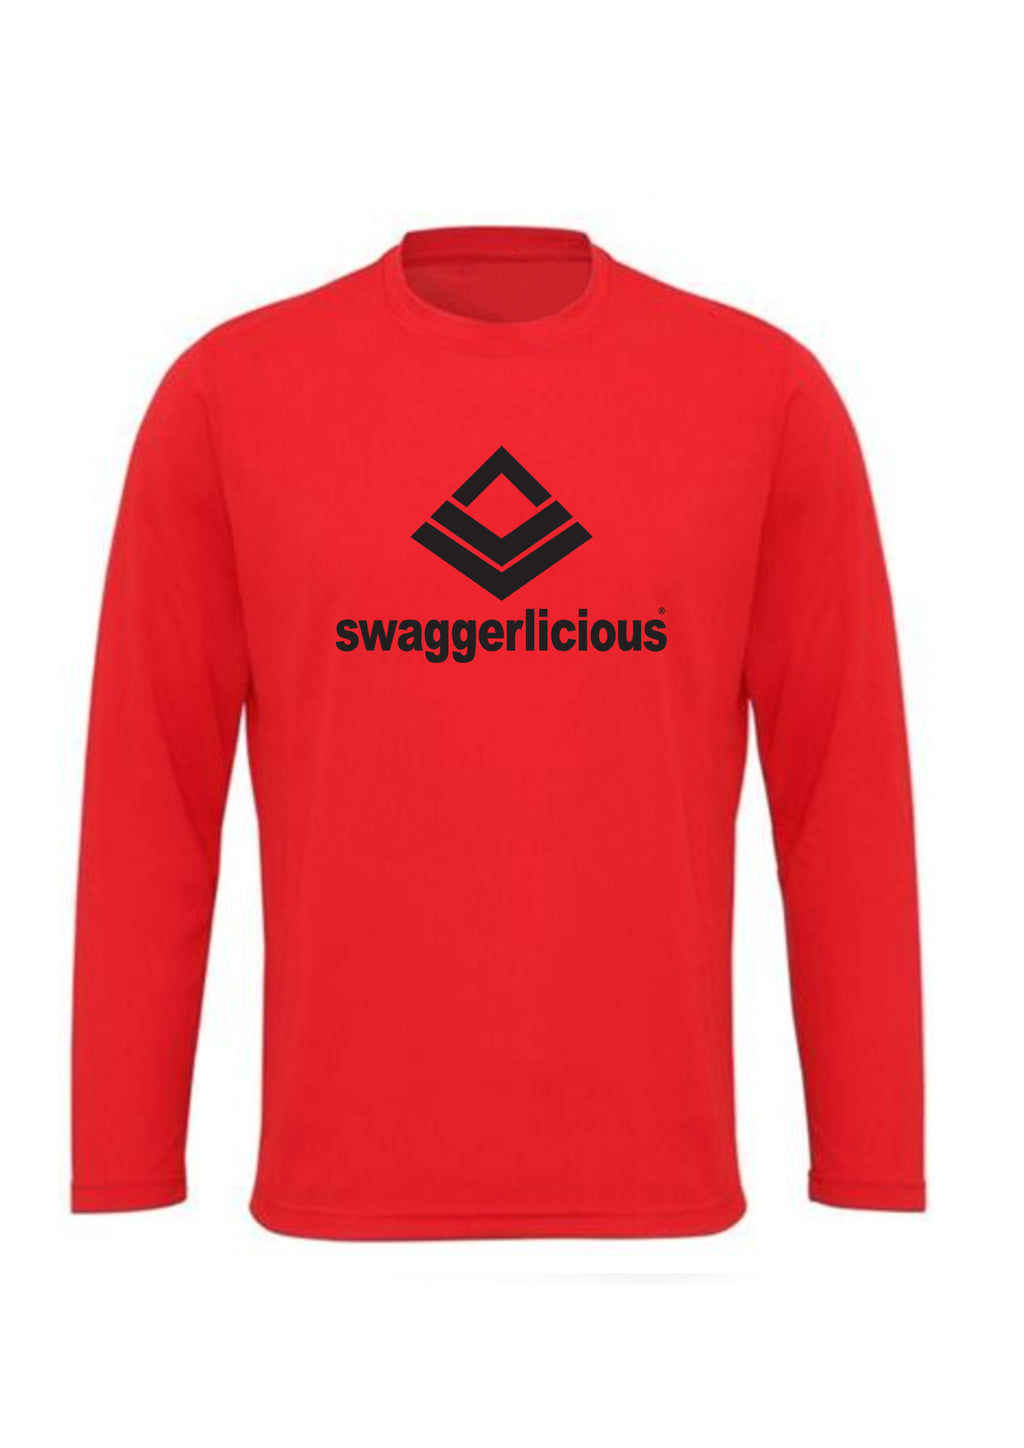 Swaggerlicious Classic Red Gym Fresh Long Sleeve Top with Black Logo - swaggerlicious-clothing.com